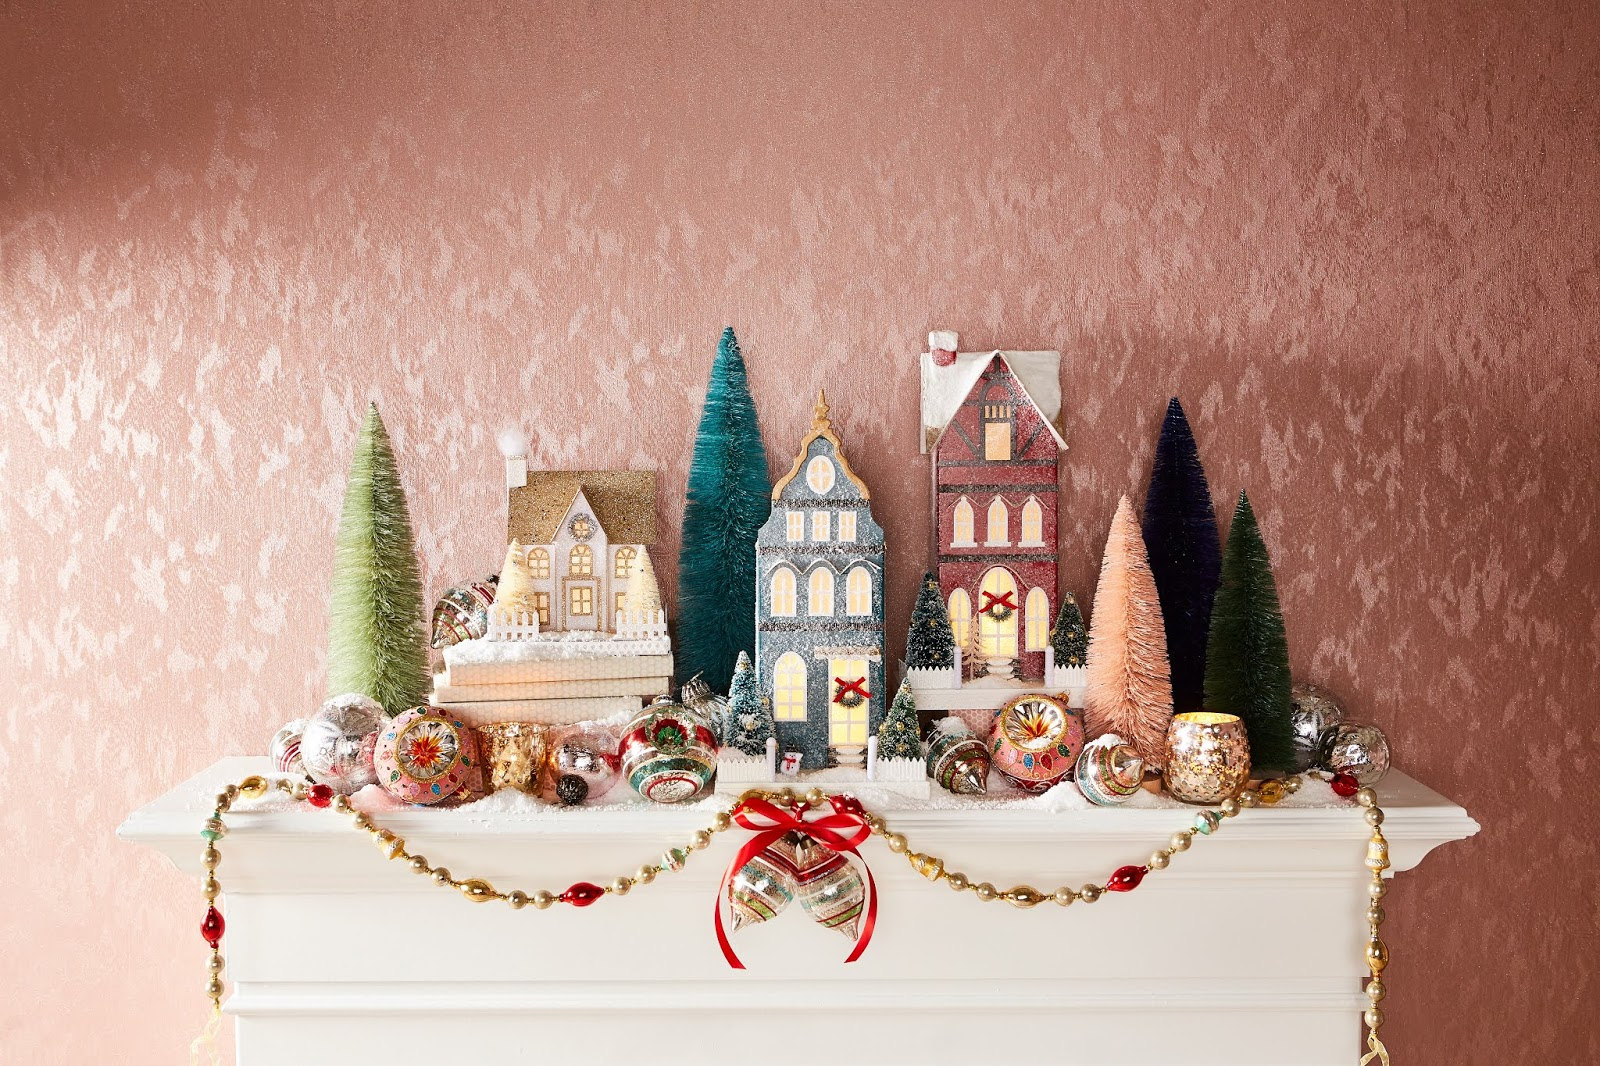 Fun ways to use ornaments in holiday decorating